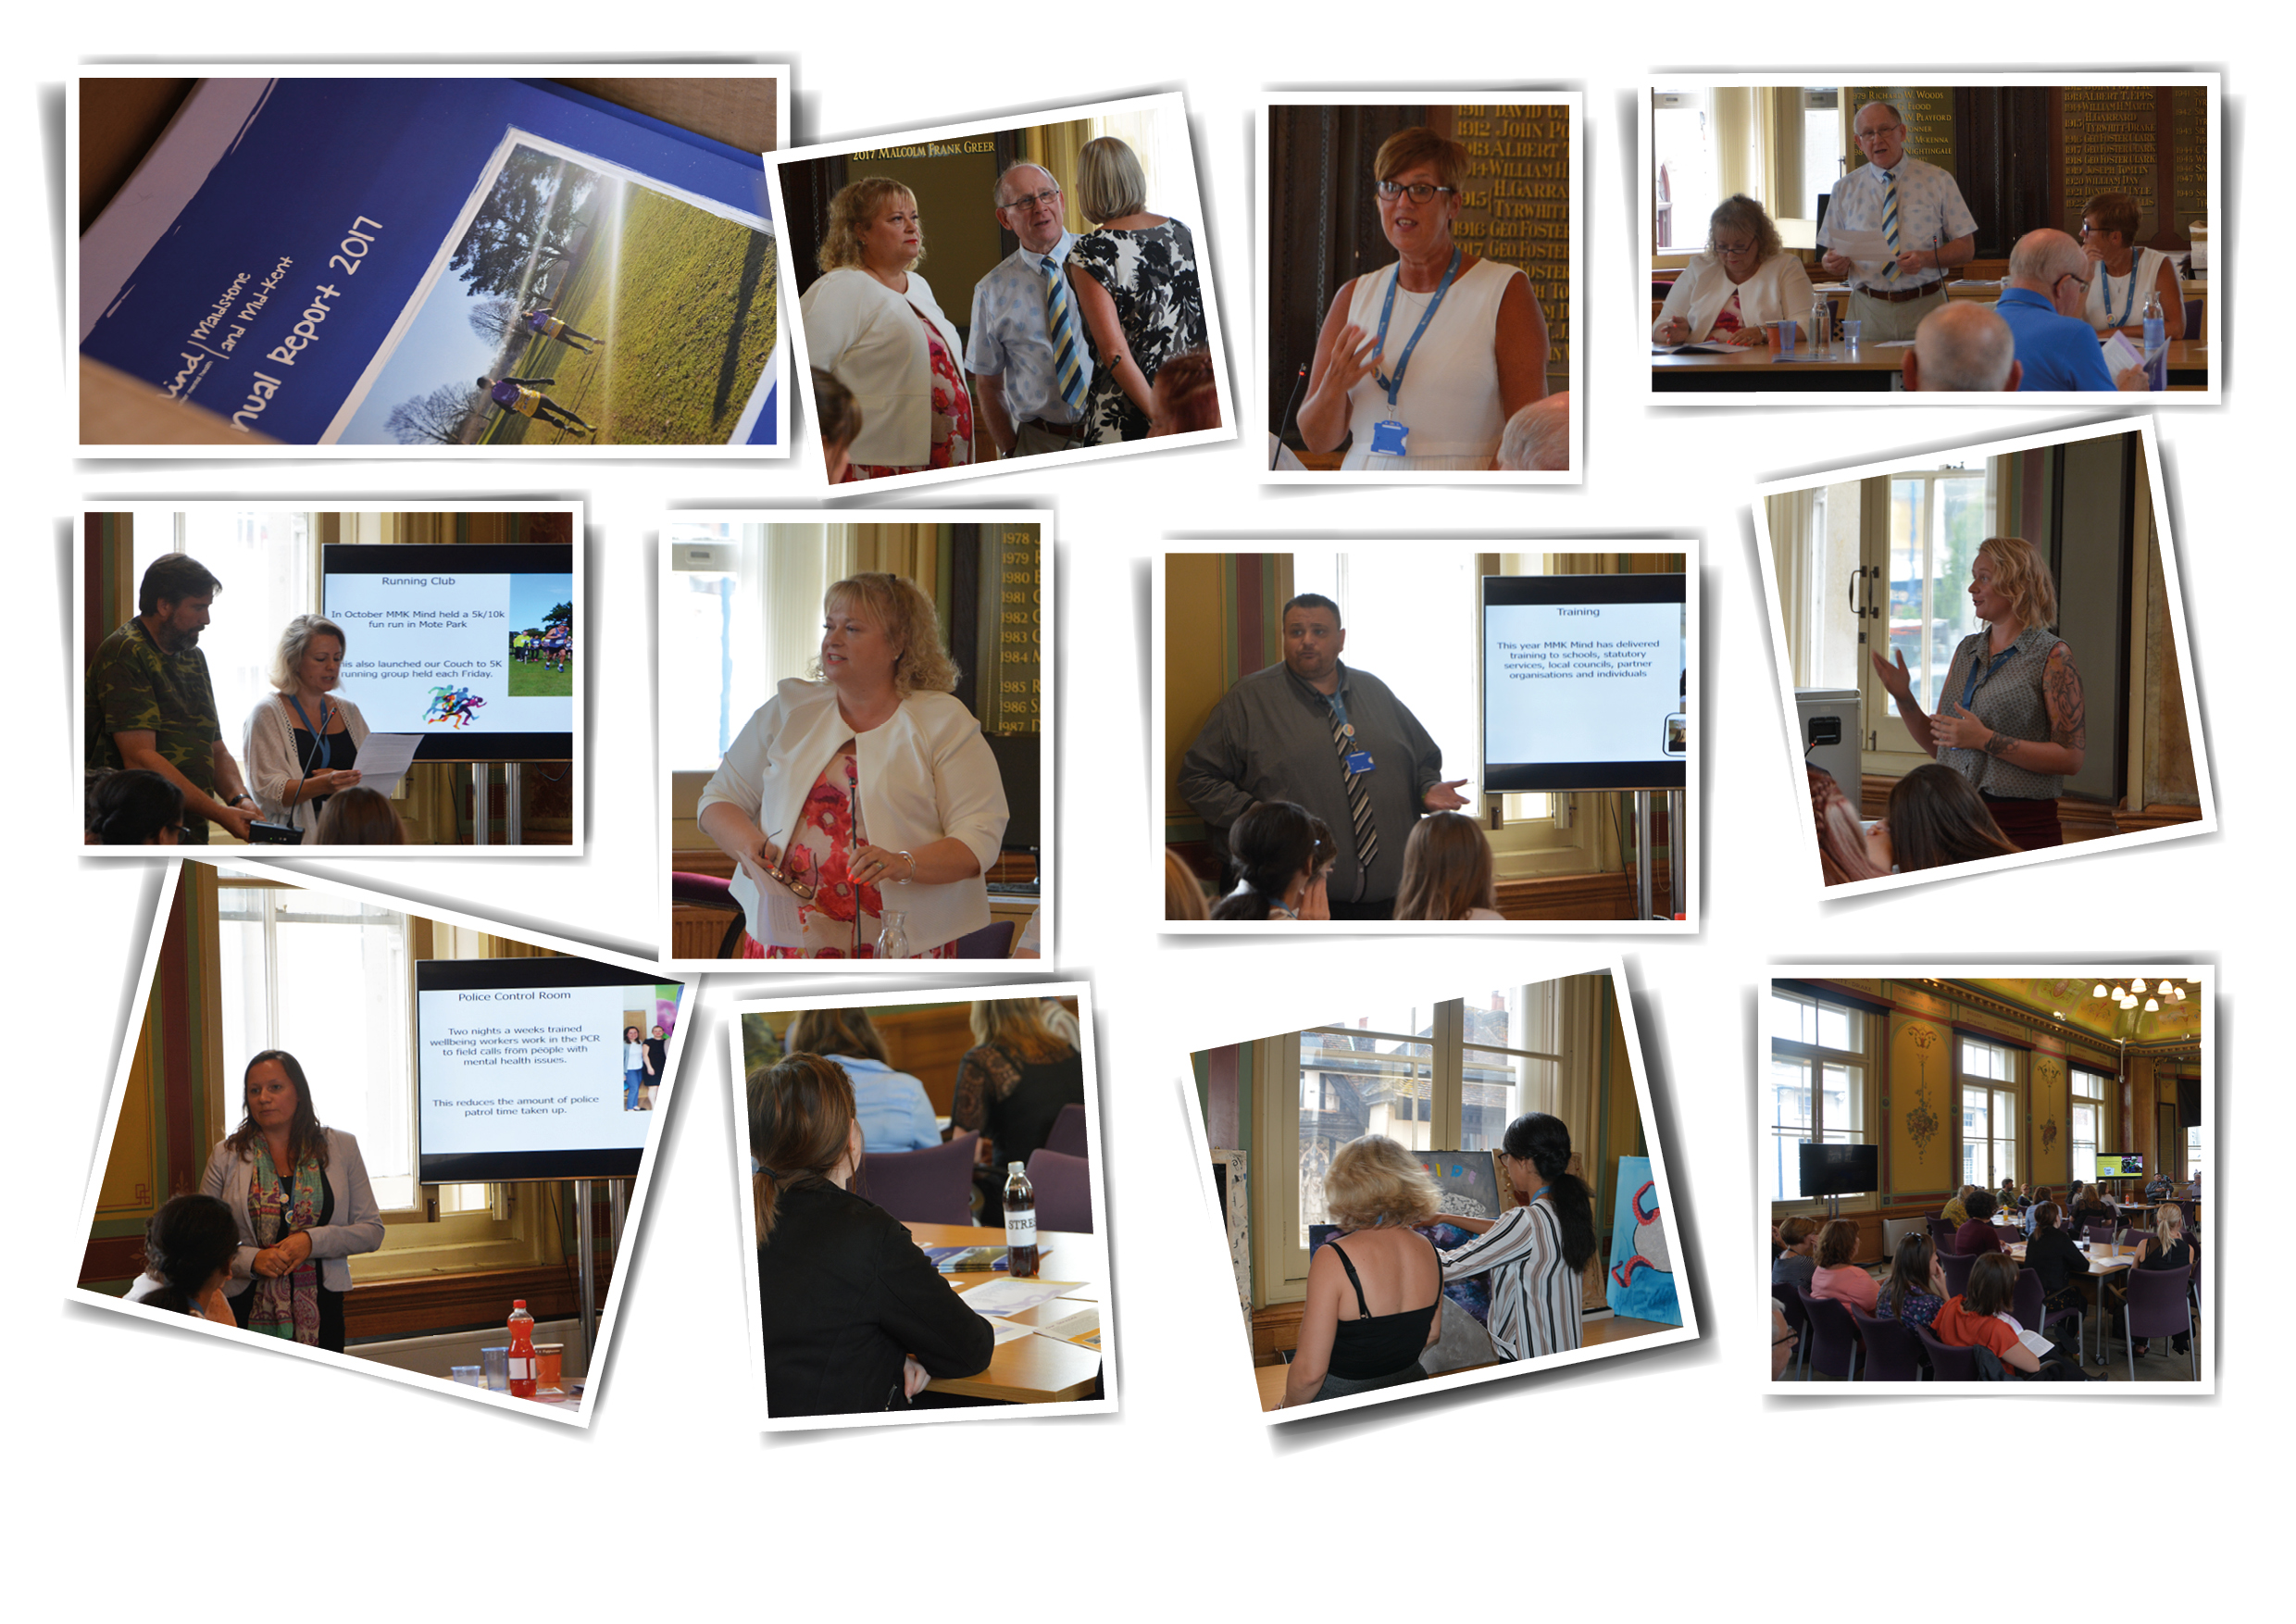 2017 AGM In Maidstone - Photographs from our 2017 AGM. A photograph of Annual Reports. A photograph of trustees Sue, Tim and Hazel. A photograph of Julie Blackmore giving a speech. A photograph of Tim giving a speech. A photograph of Heidi and service user Jonathan giving a presentation about the Fun Run. A photograph of Sue giving a speech. A photograph of James giving a presentation. A photograph of Kelly giving a speech. A photograph of Kimberley giving a presentation. Photographs of the audience.